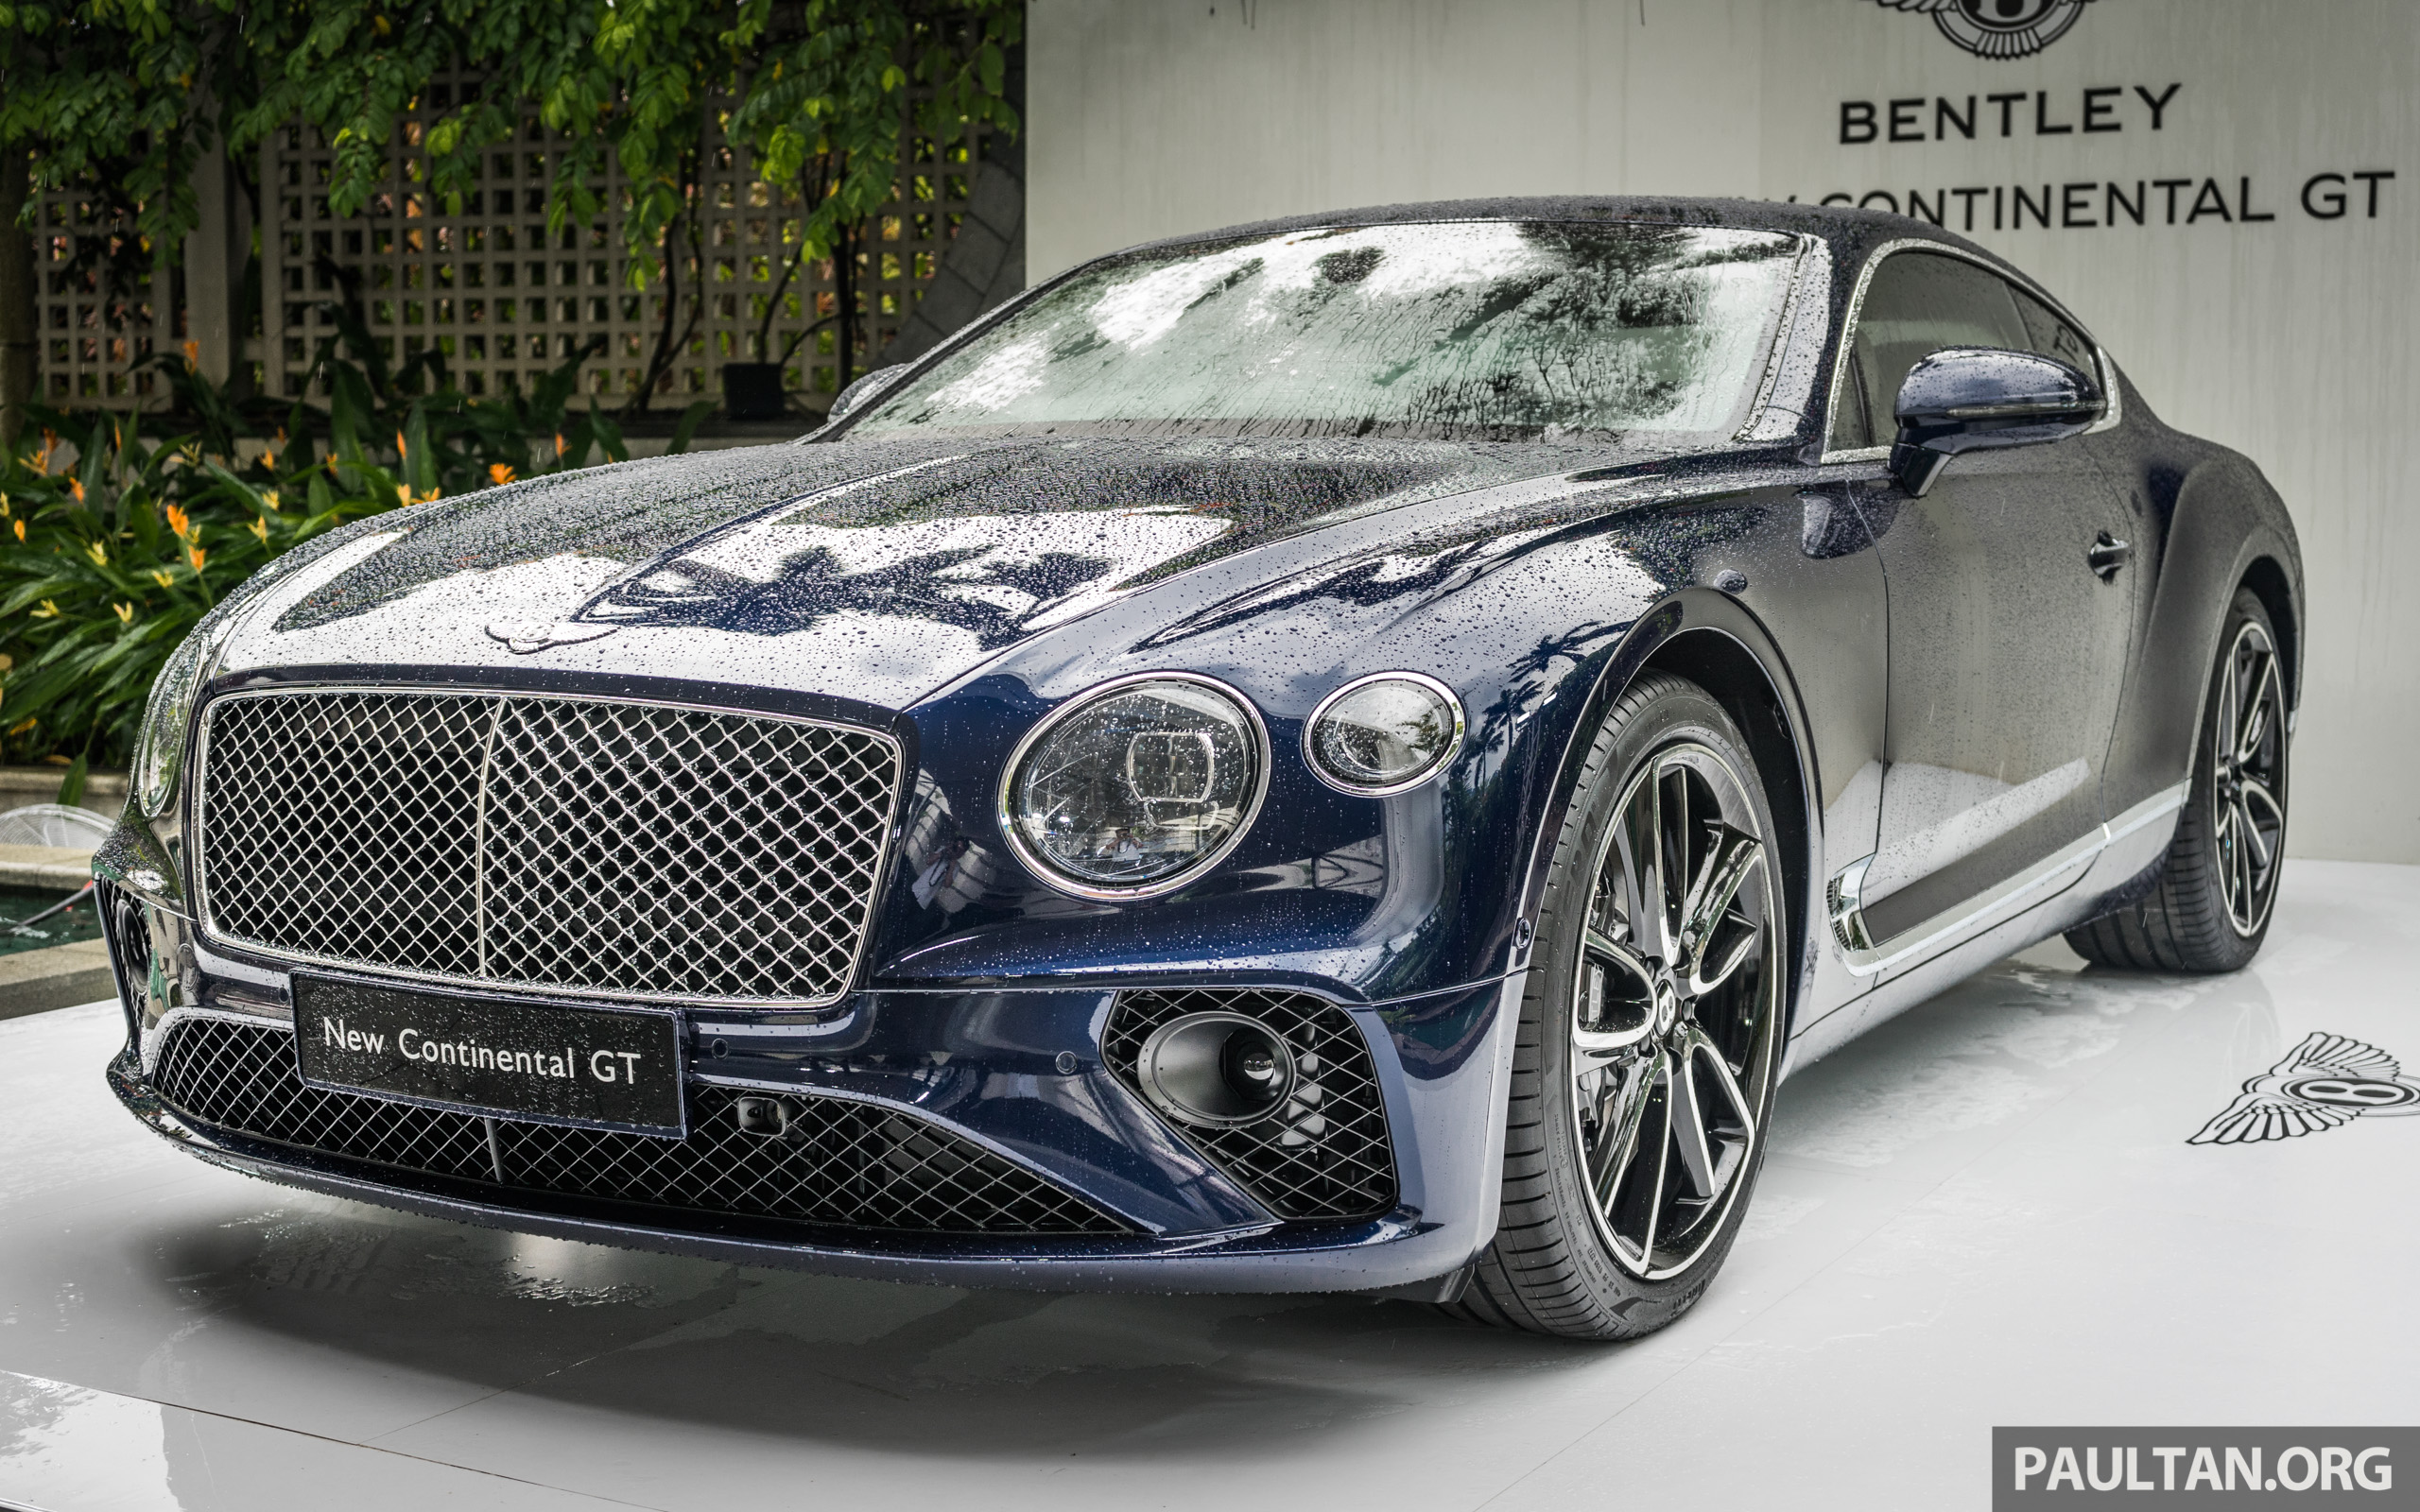 2018 Bentley Continental GT Previewed In Singapore Image